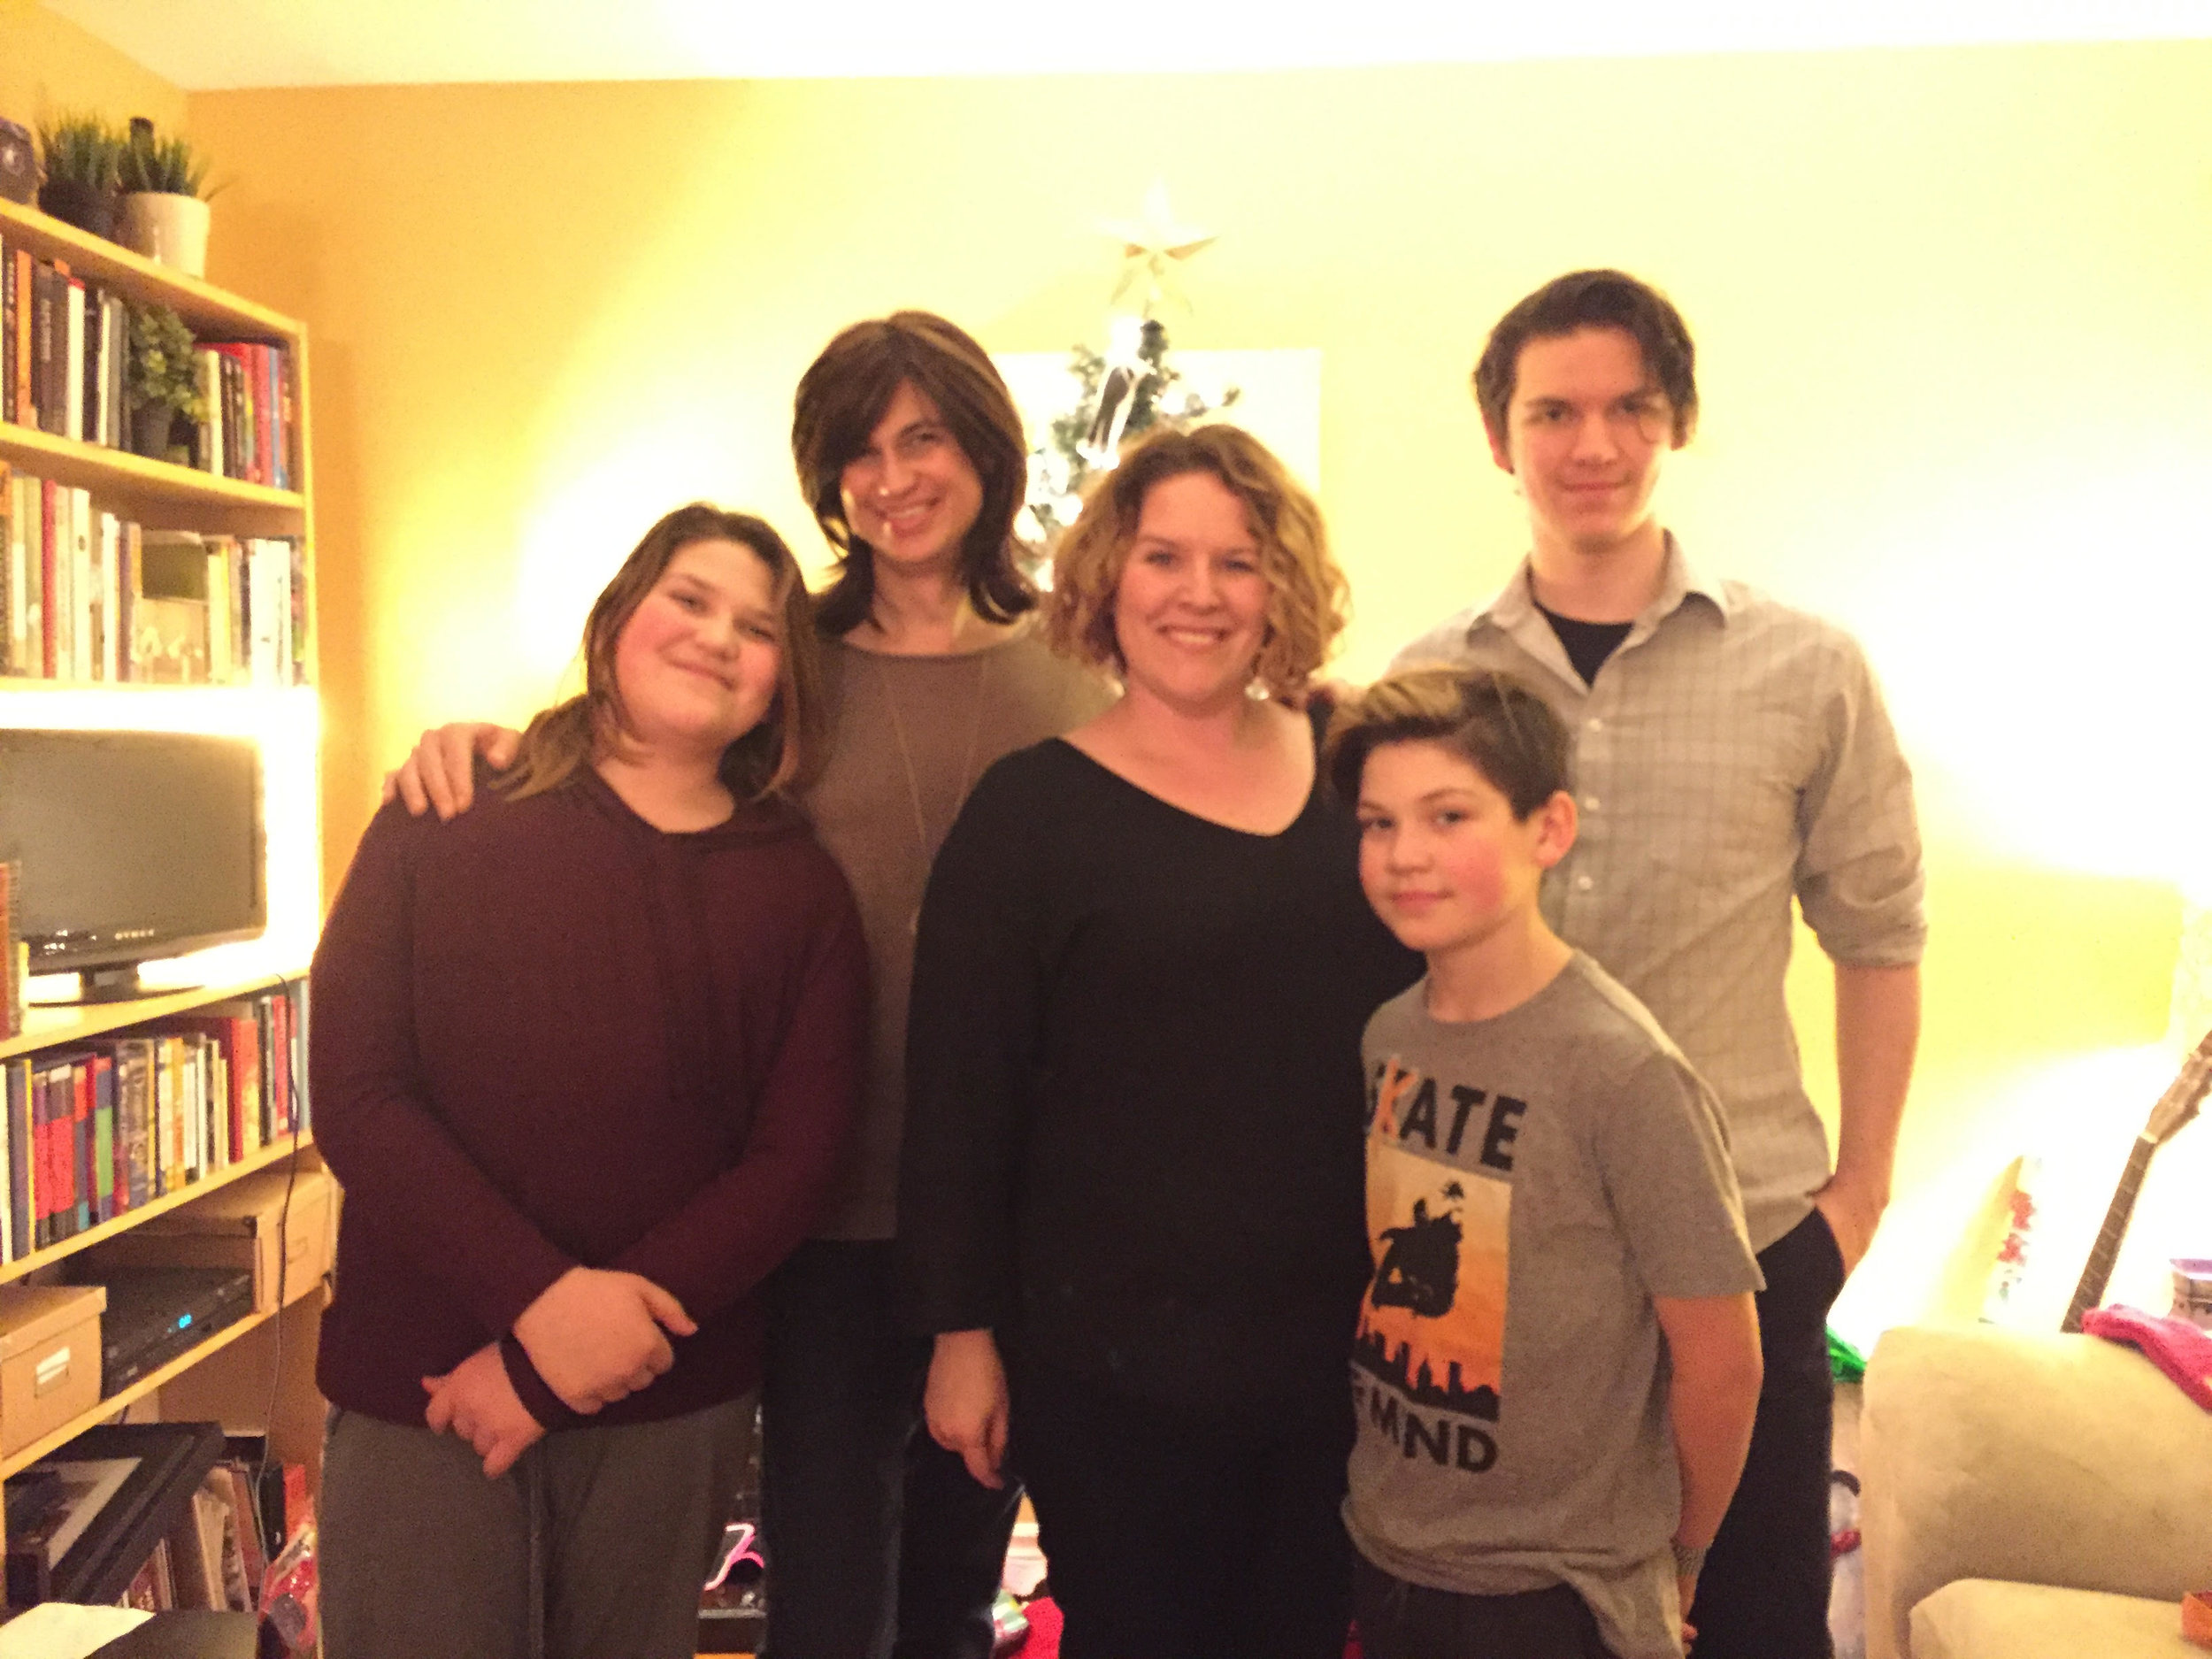 The fam celebrating a very gay Christmas